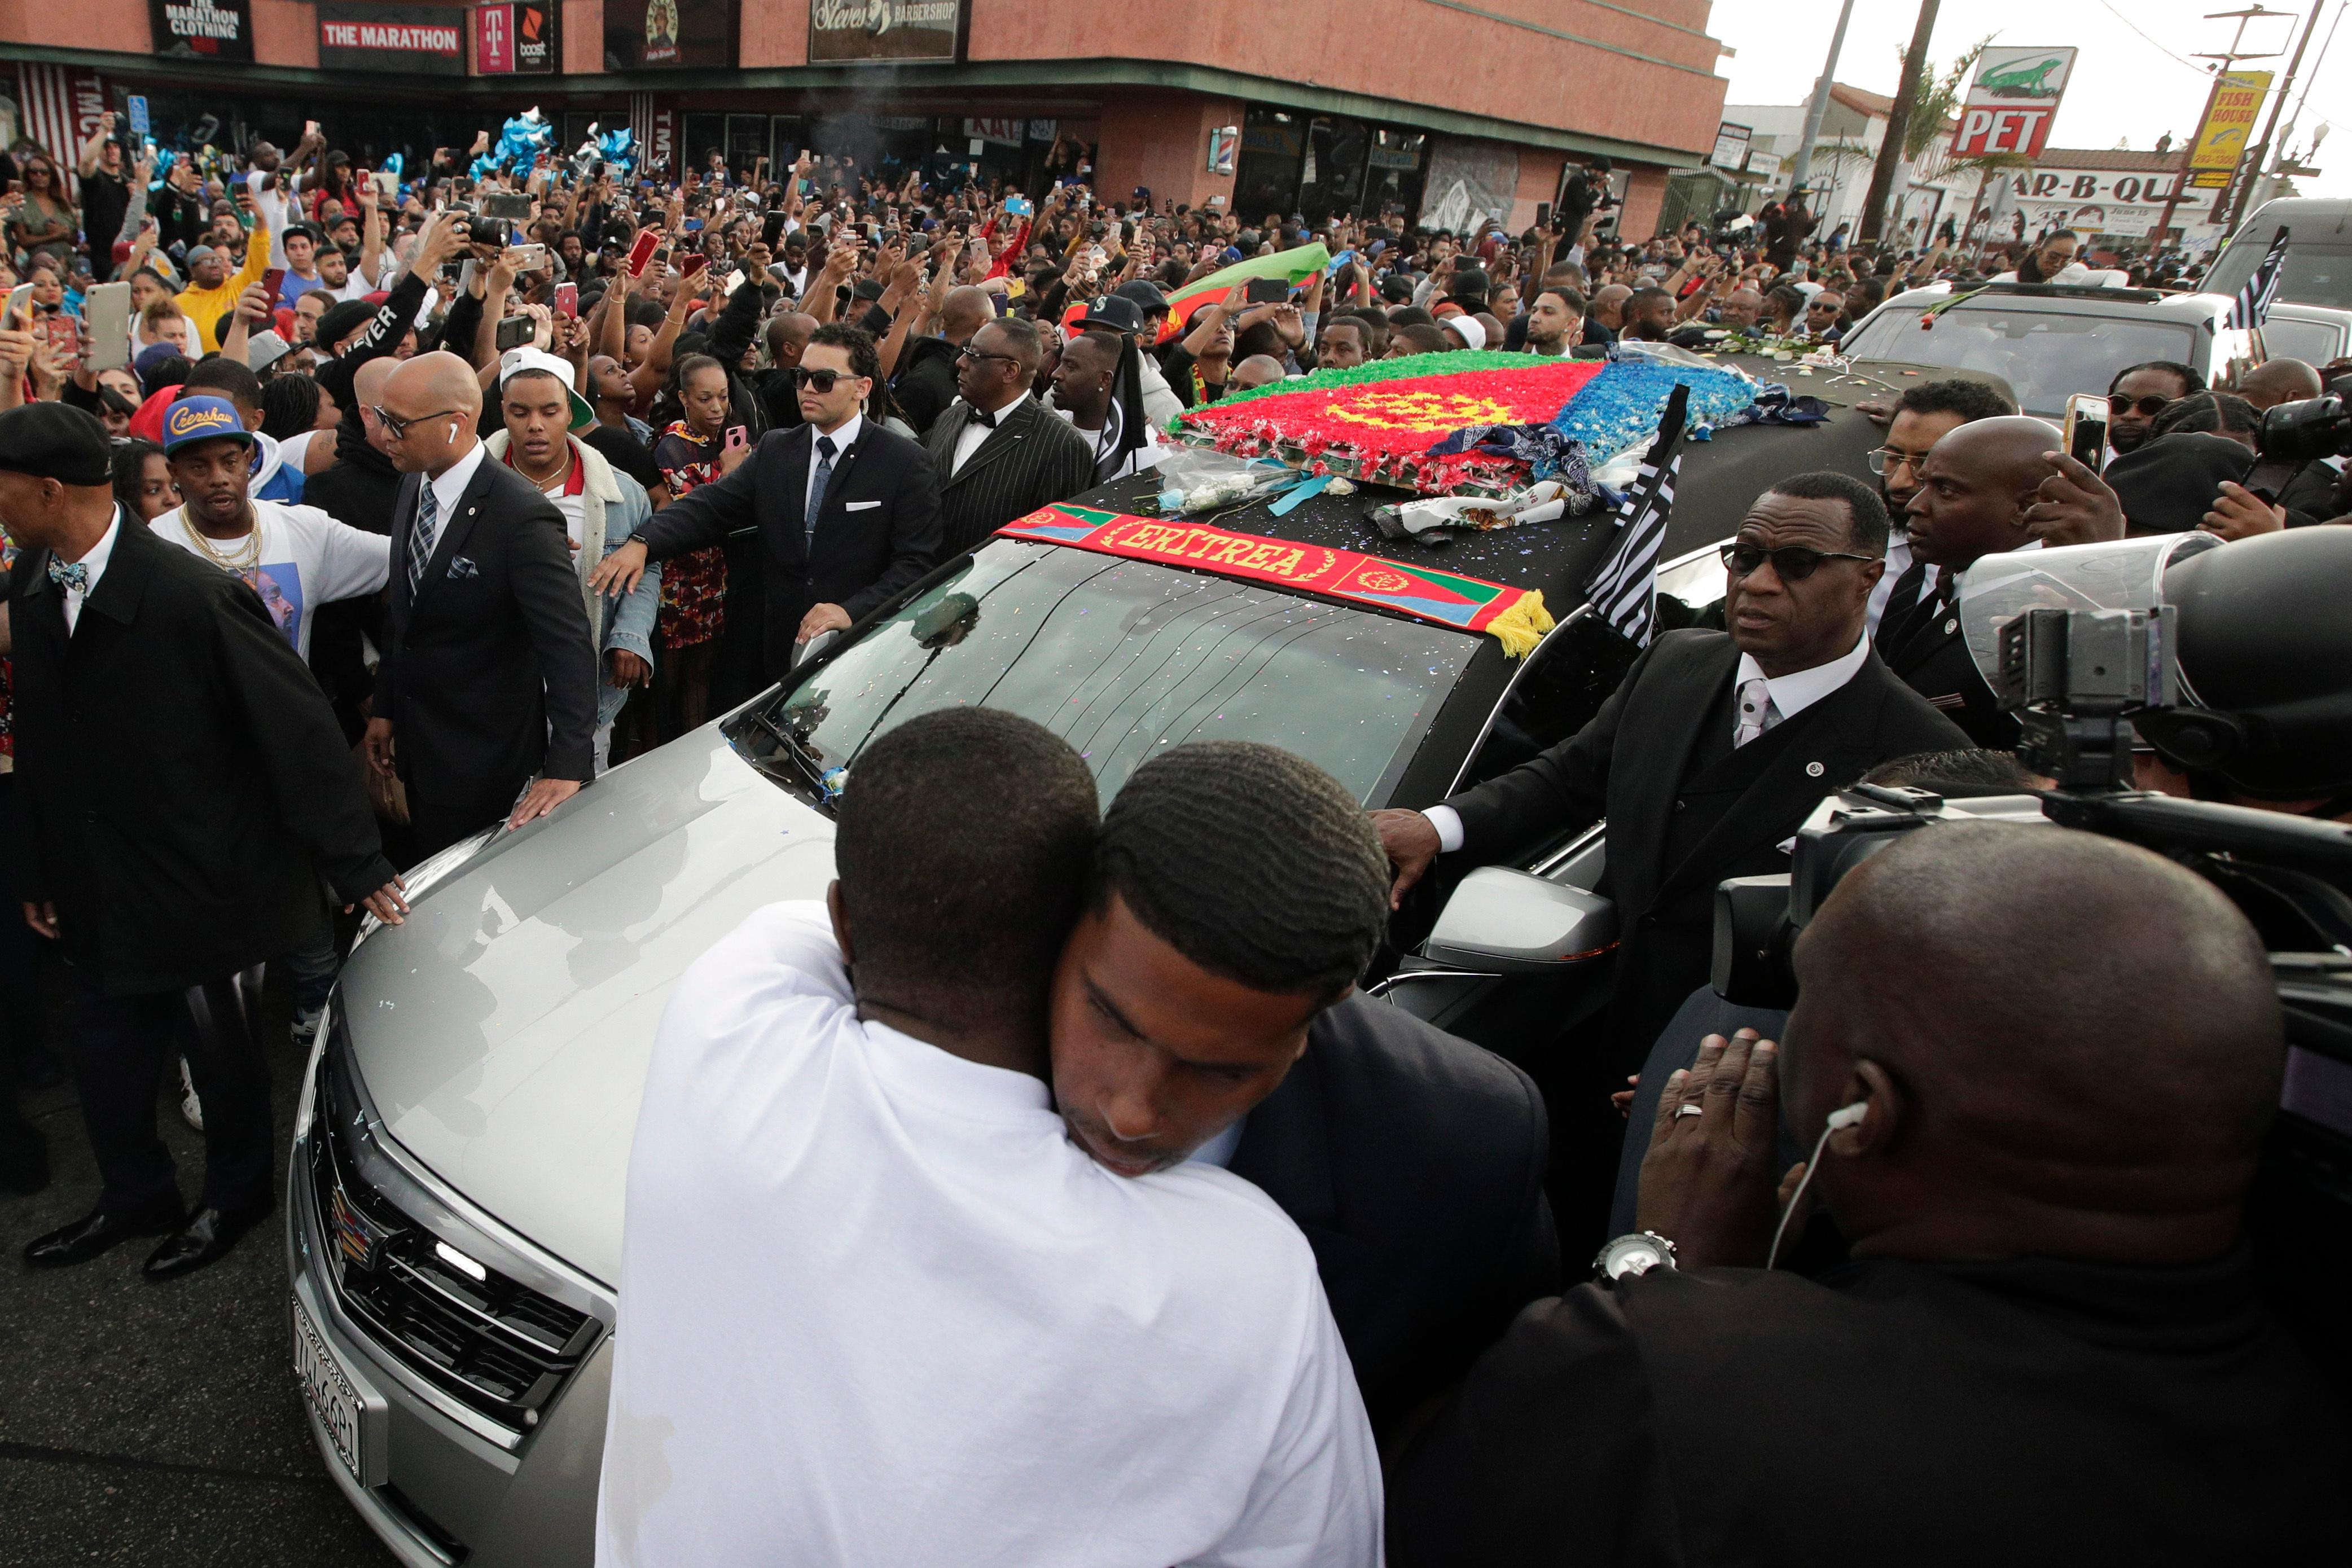 Two men hug as a hearse carrying the casket of slain rapper Nipsey Hussle passes through the crowd Thursday, April 11, 2019, in Los Angeles. (AP Photo/Jae C. Hong)